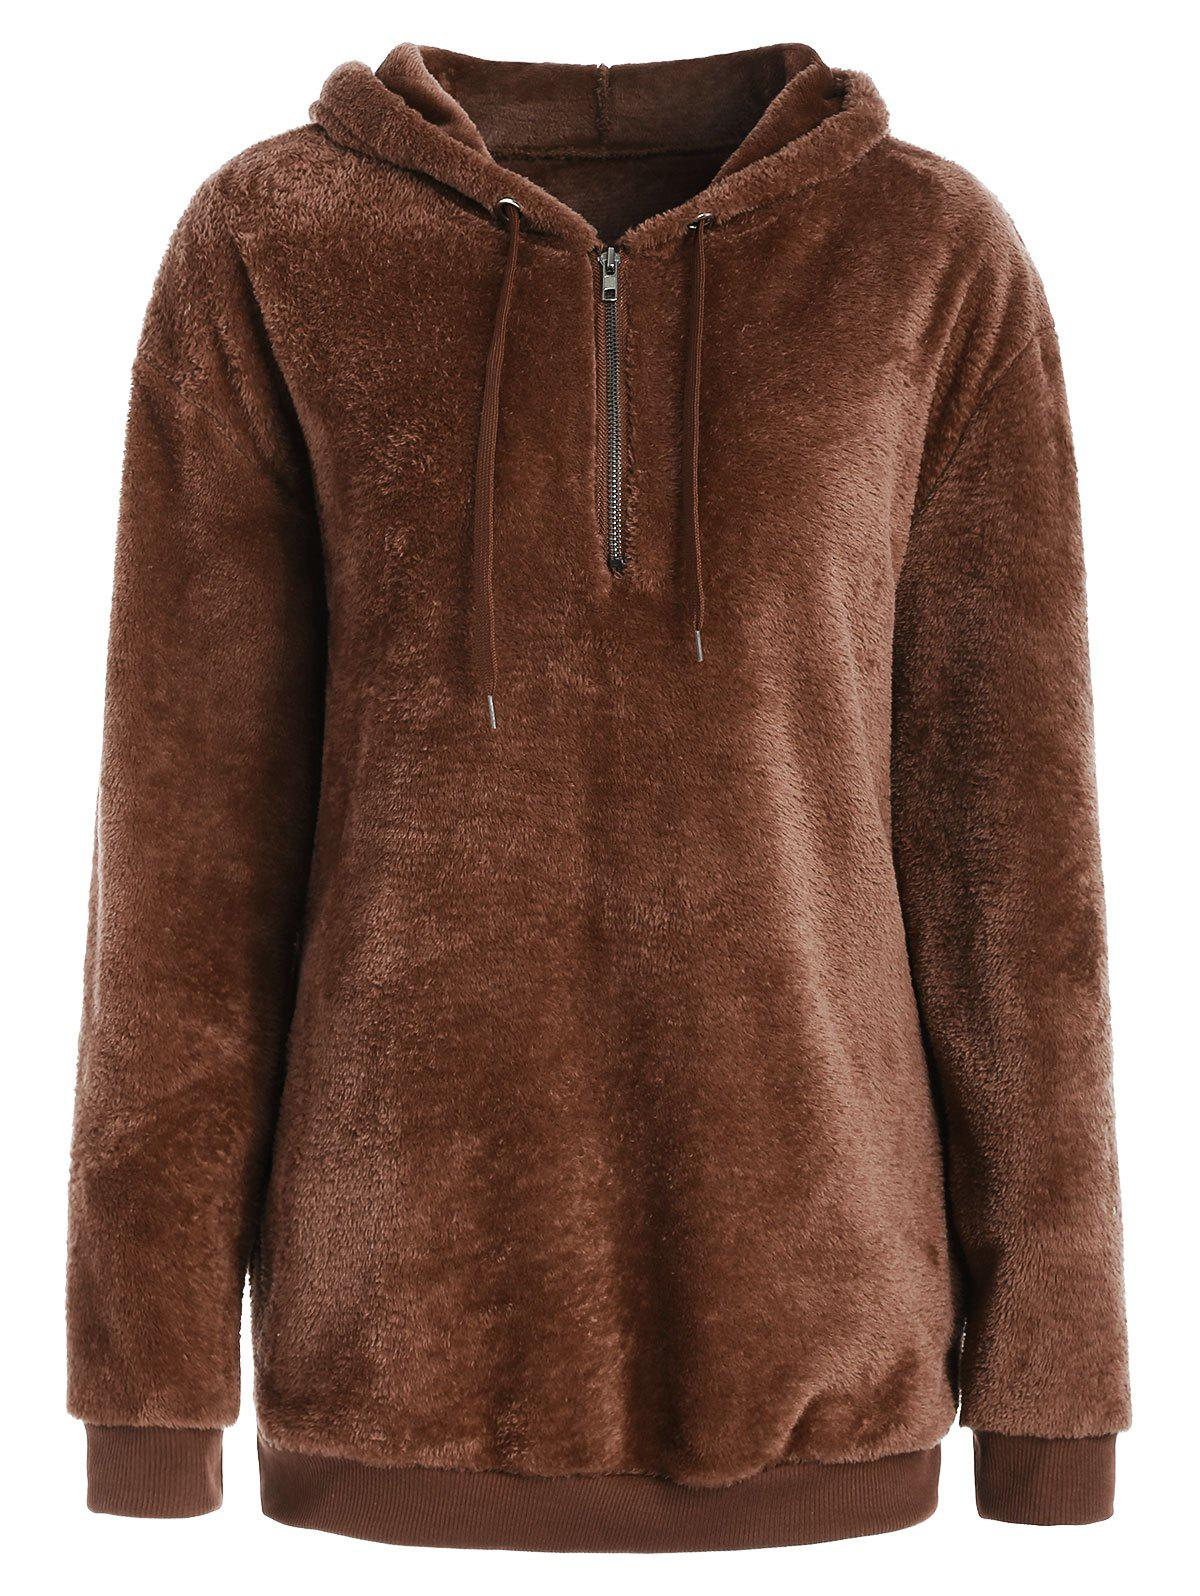 Drop Shoulder Half Zipper Faux Fur Hoodie - BROWN M